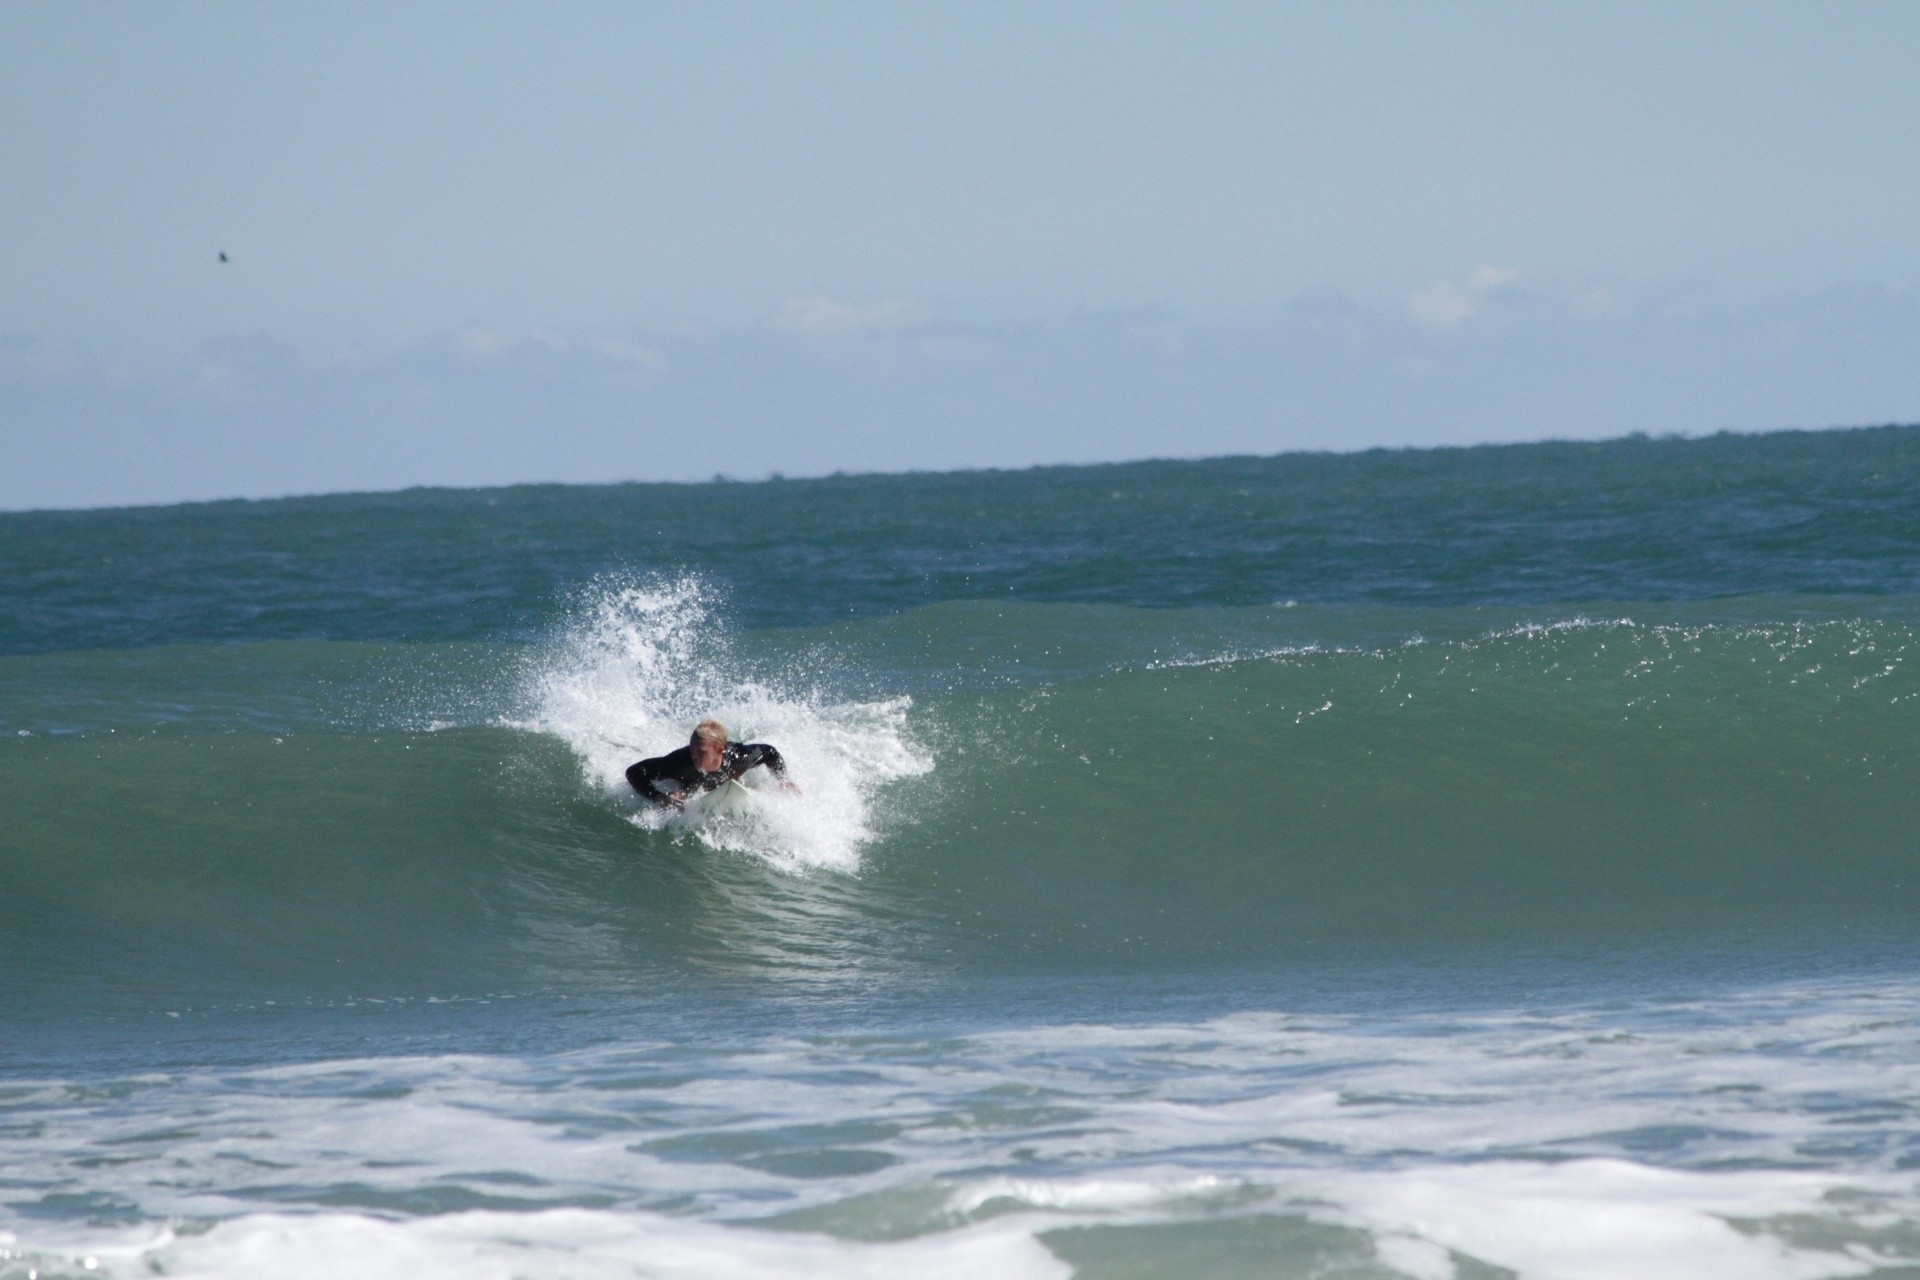 h2o4eversurf4life's photo of Satellite Beach